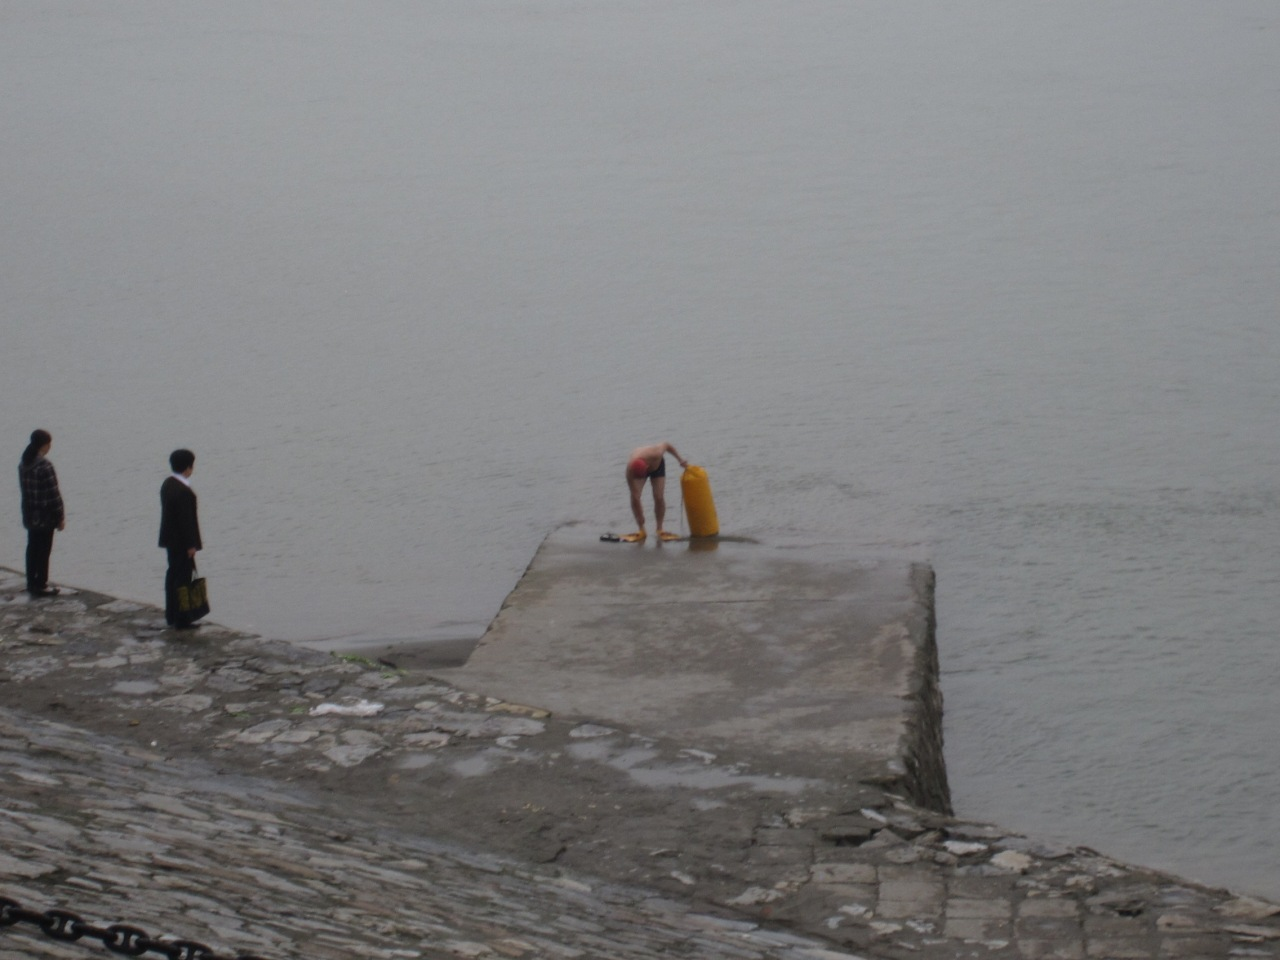 Local guys attaching themselves to buoys and floating across river